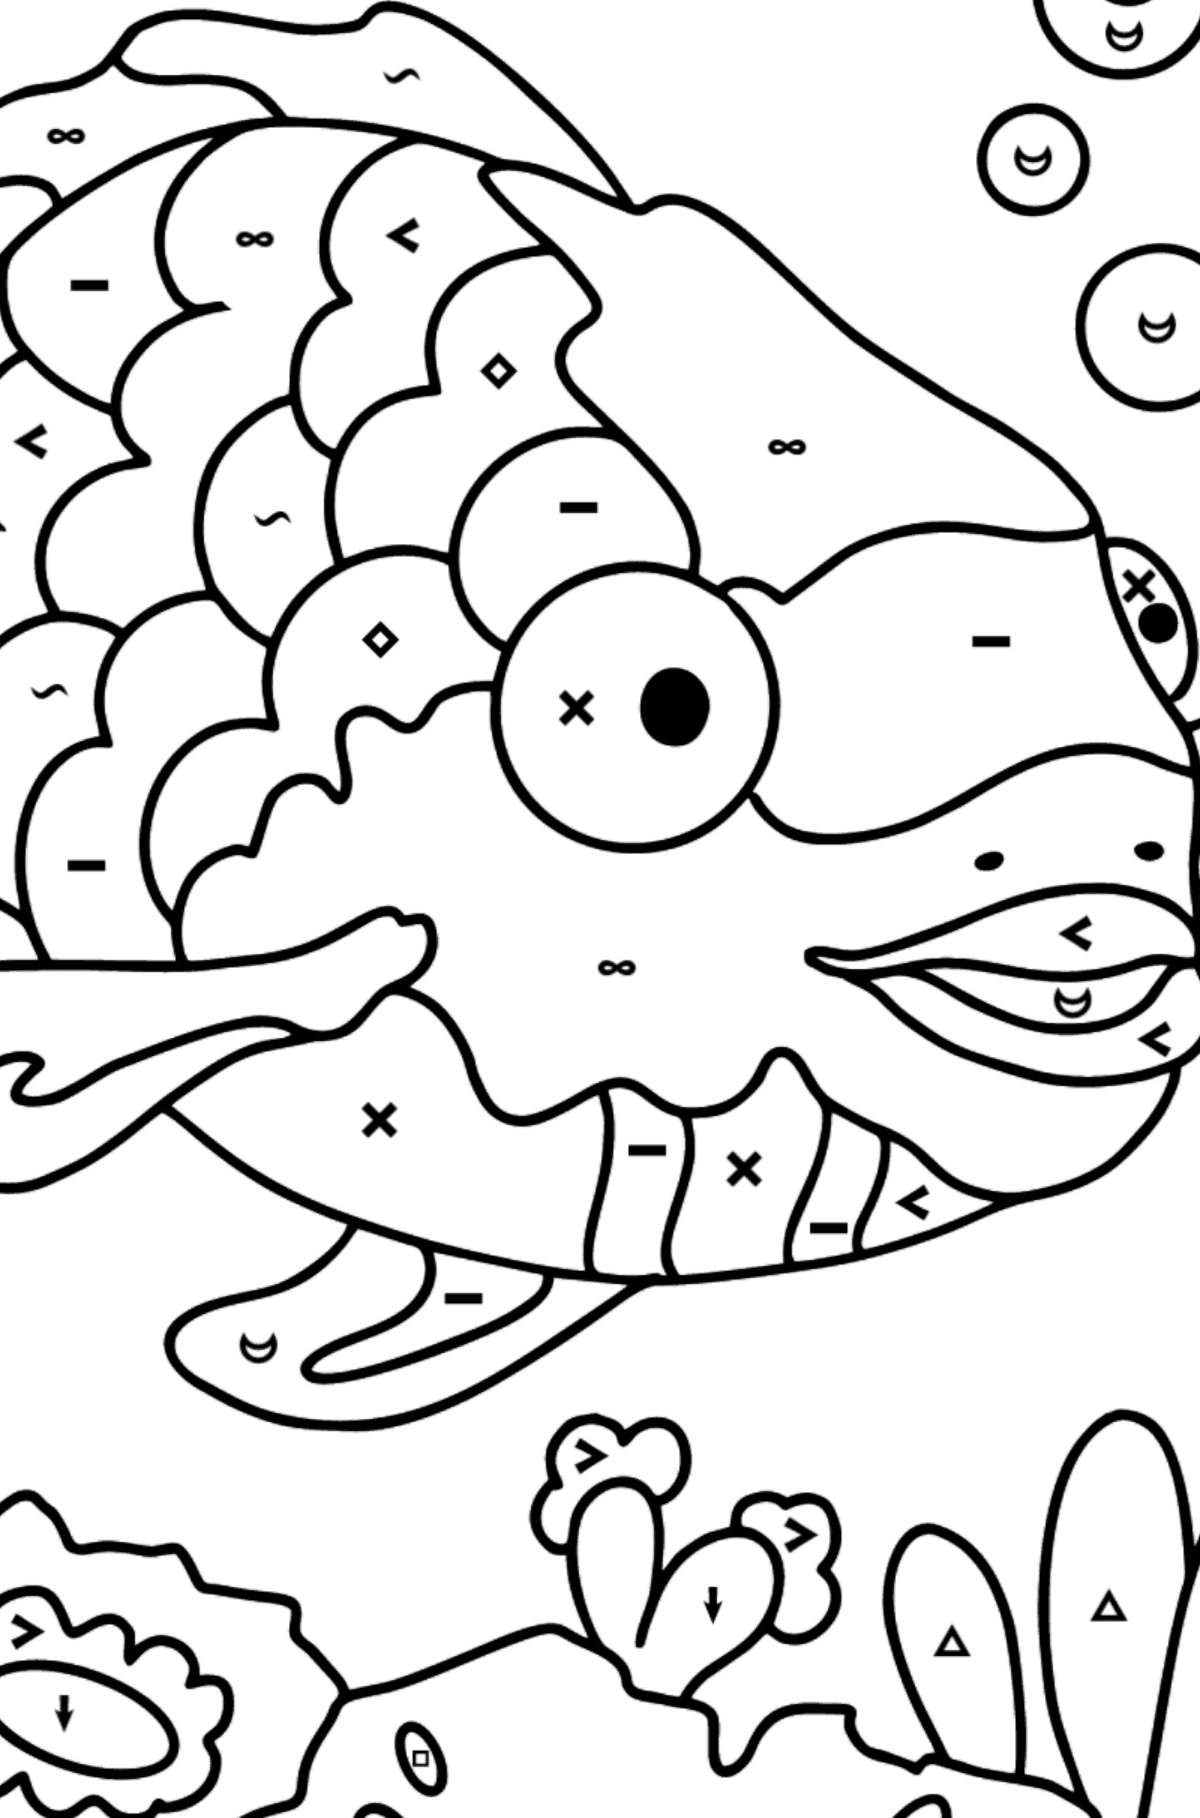 Coloring Page - An Exotic or Rainbow fish - Coloring by Symbols for Kids